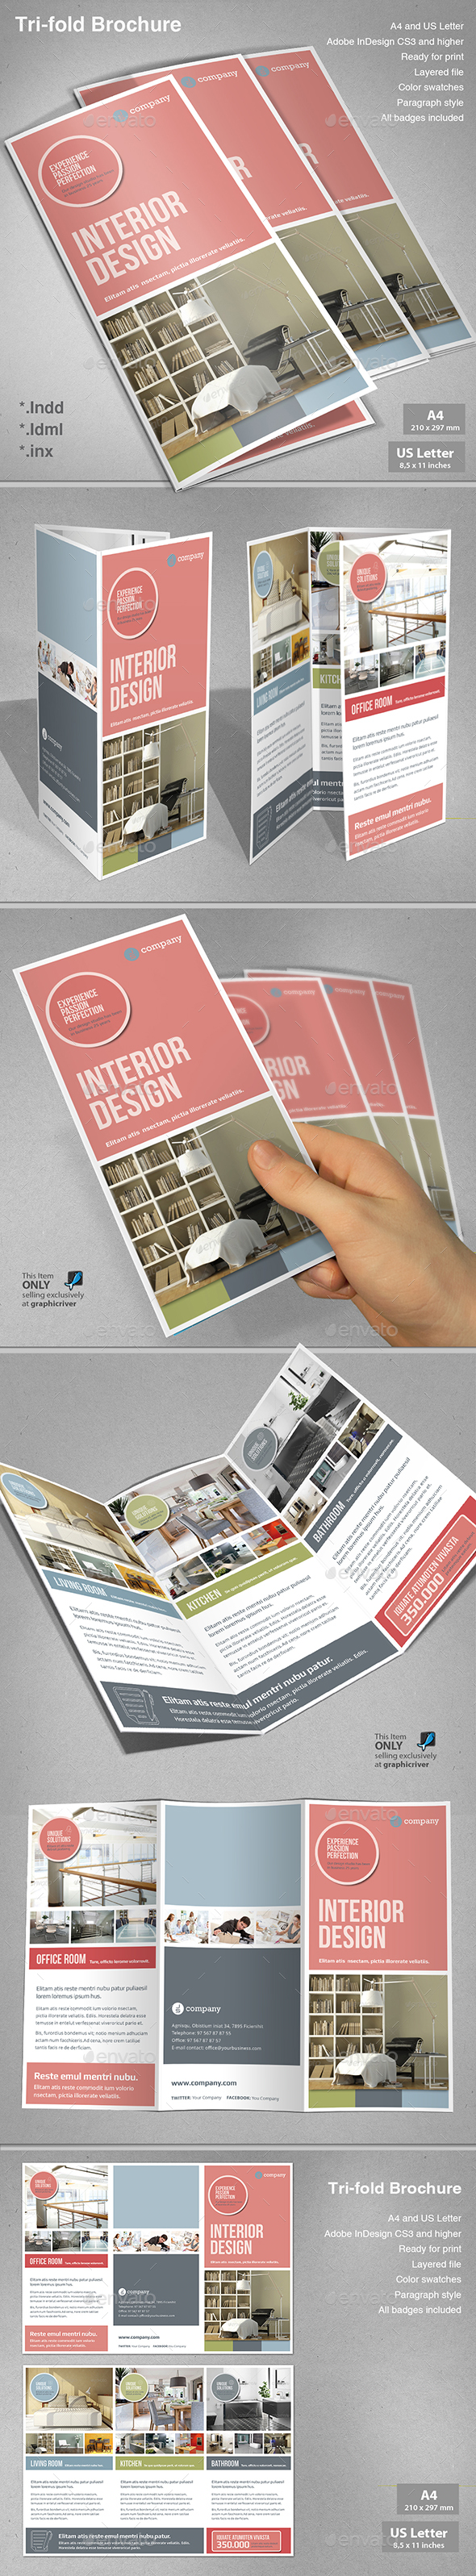 Tri-fold Interior Design - Informational Brochures